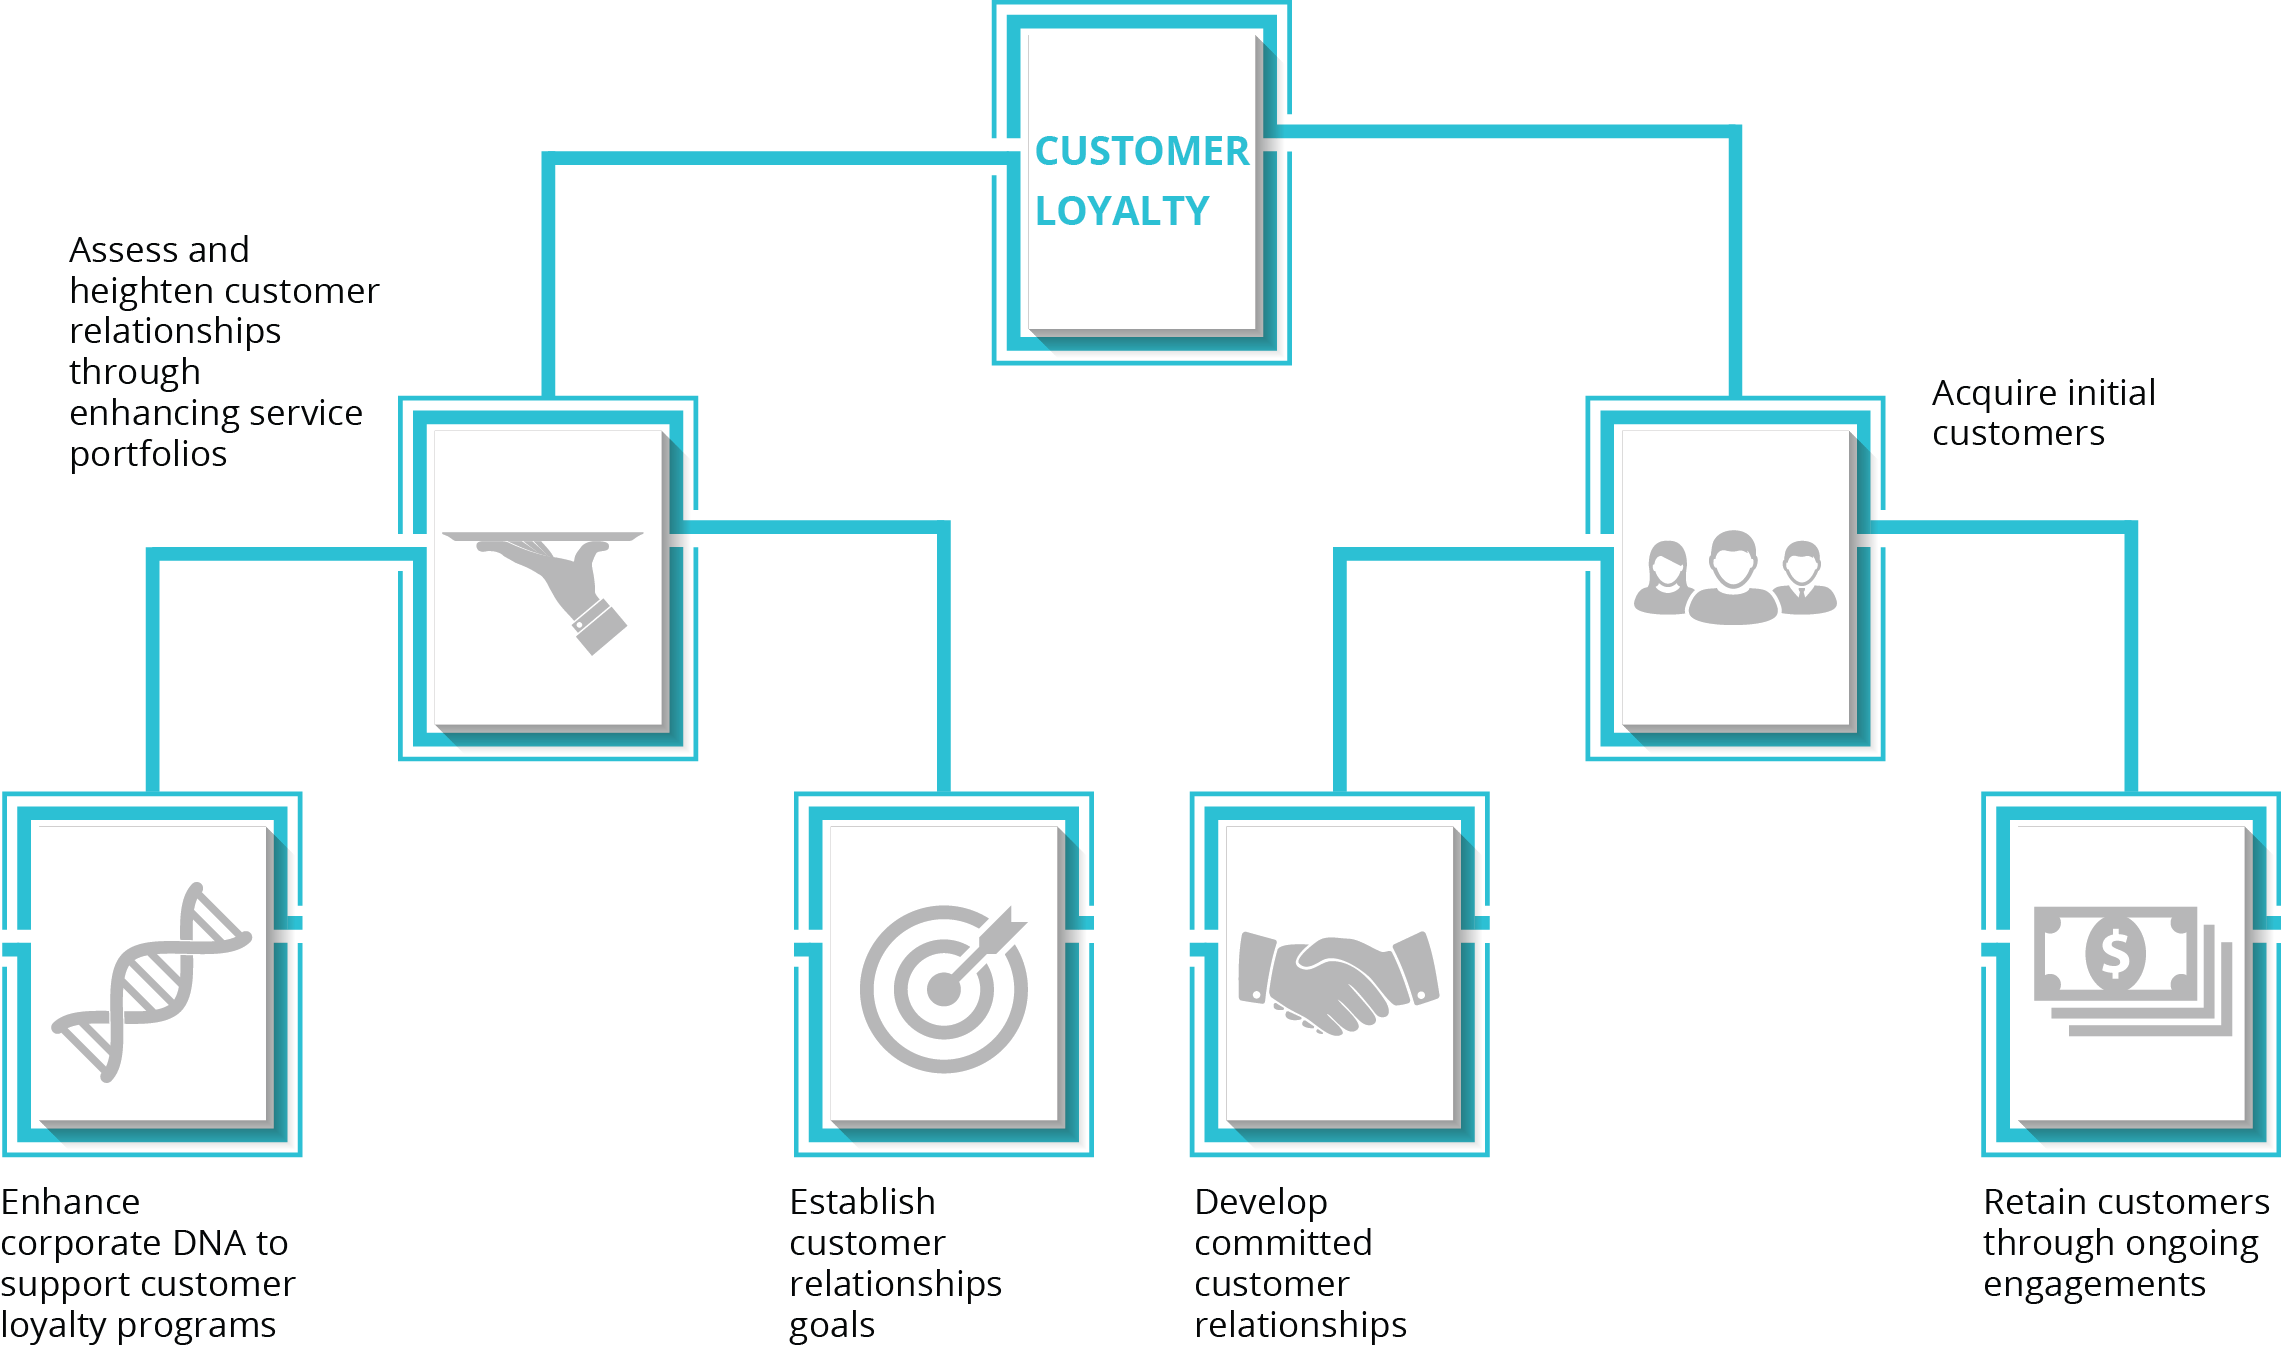 Customer loyalty tree